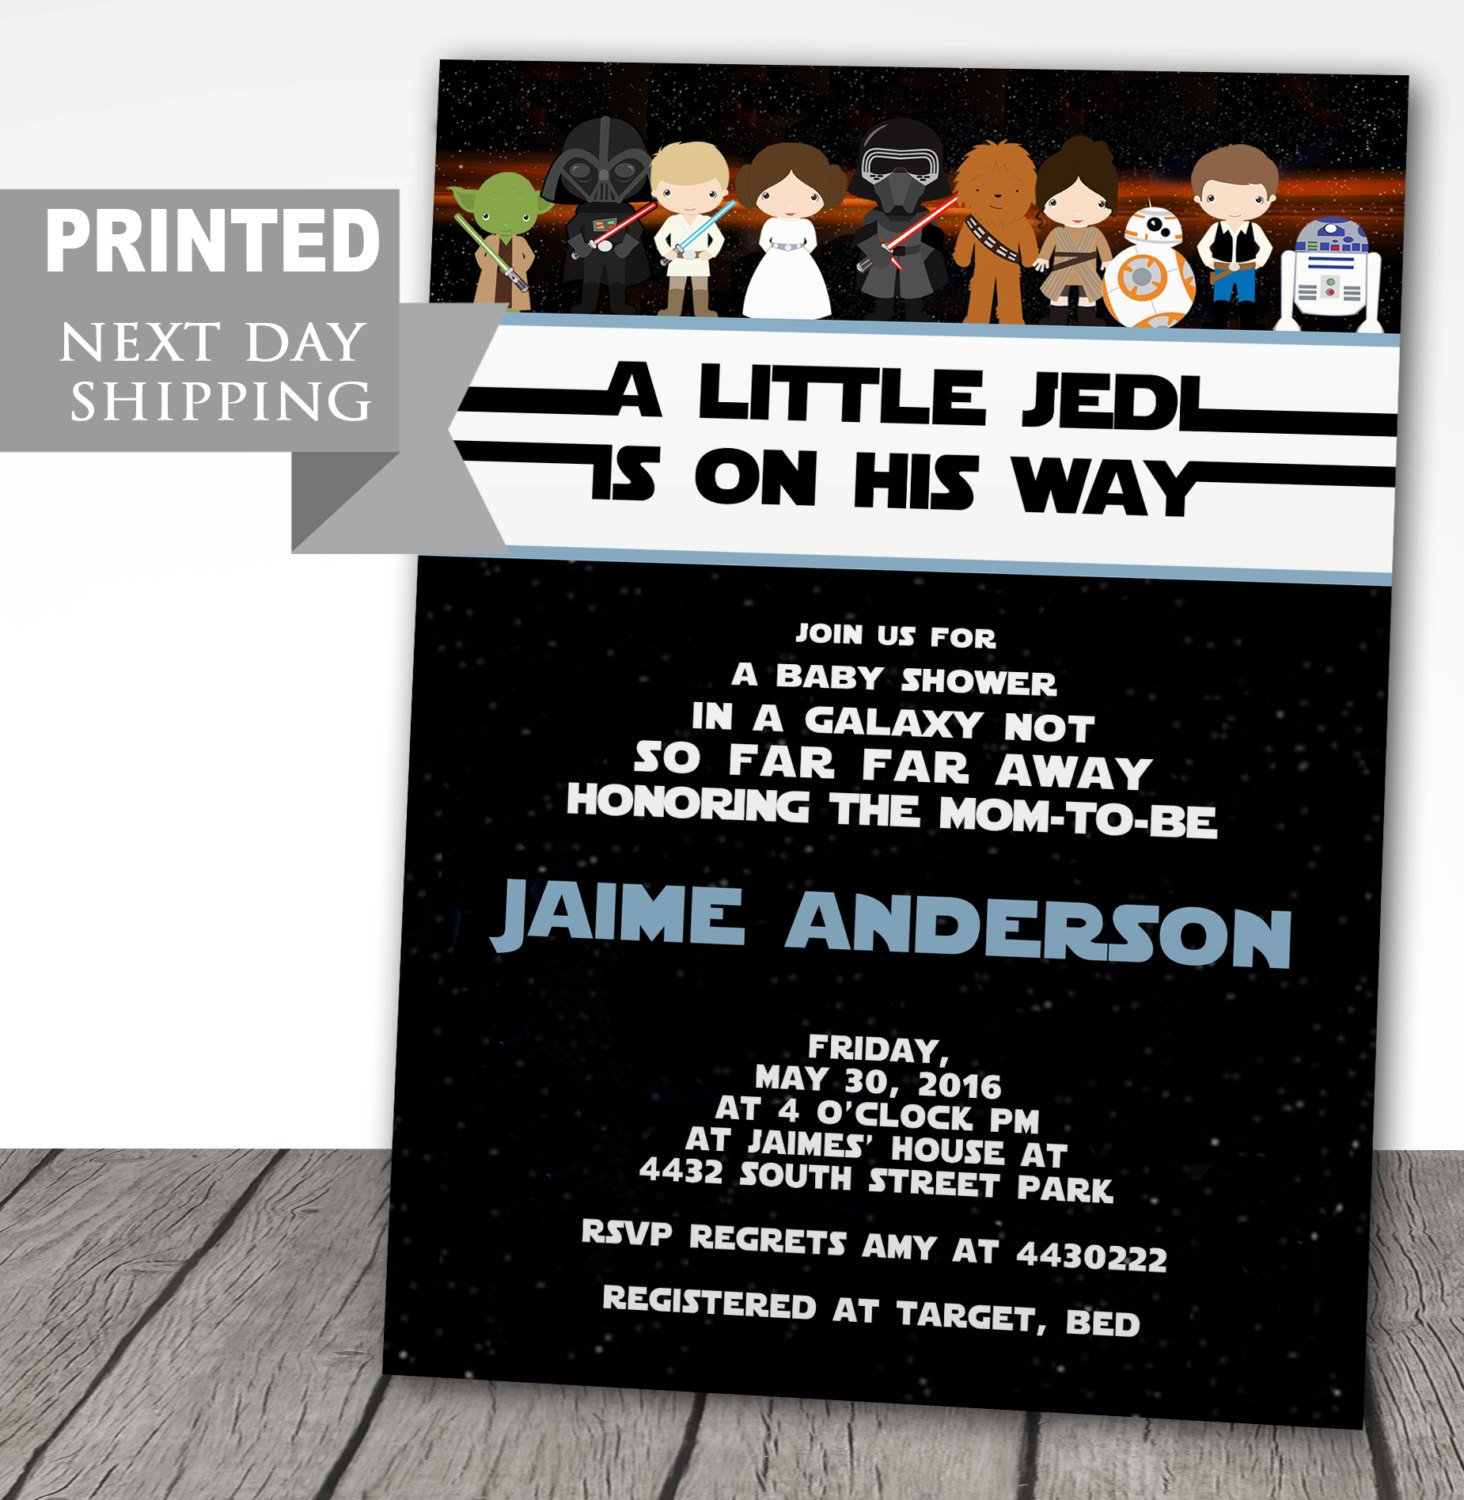 Printed Star Wars Baby Shower Invitations Starwars Baby | Etsy - Free Printable Star Wars Baby Shower Invites